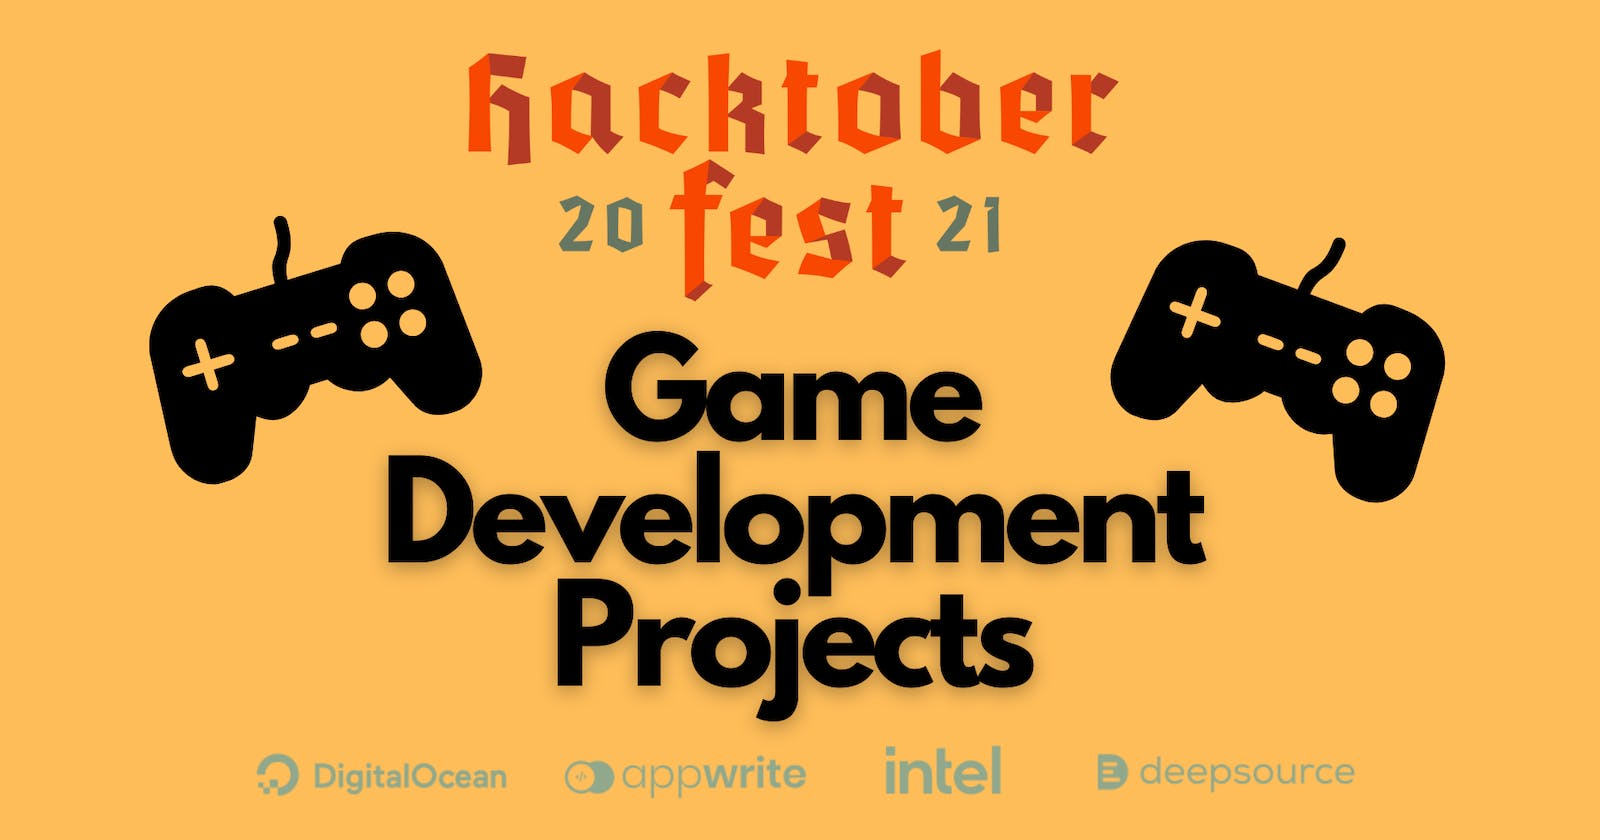 Game Development Projects for Hacktoberfest